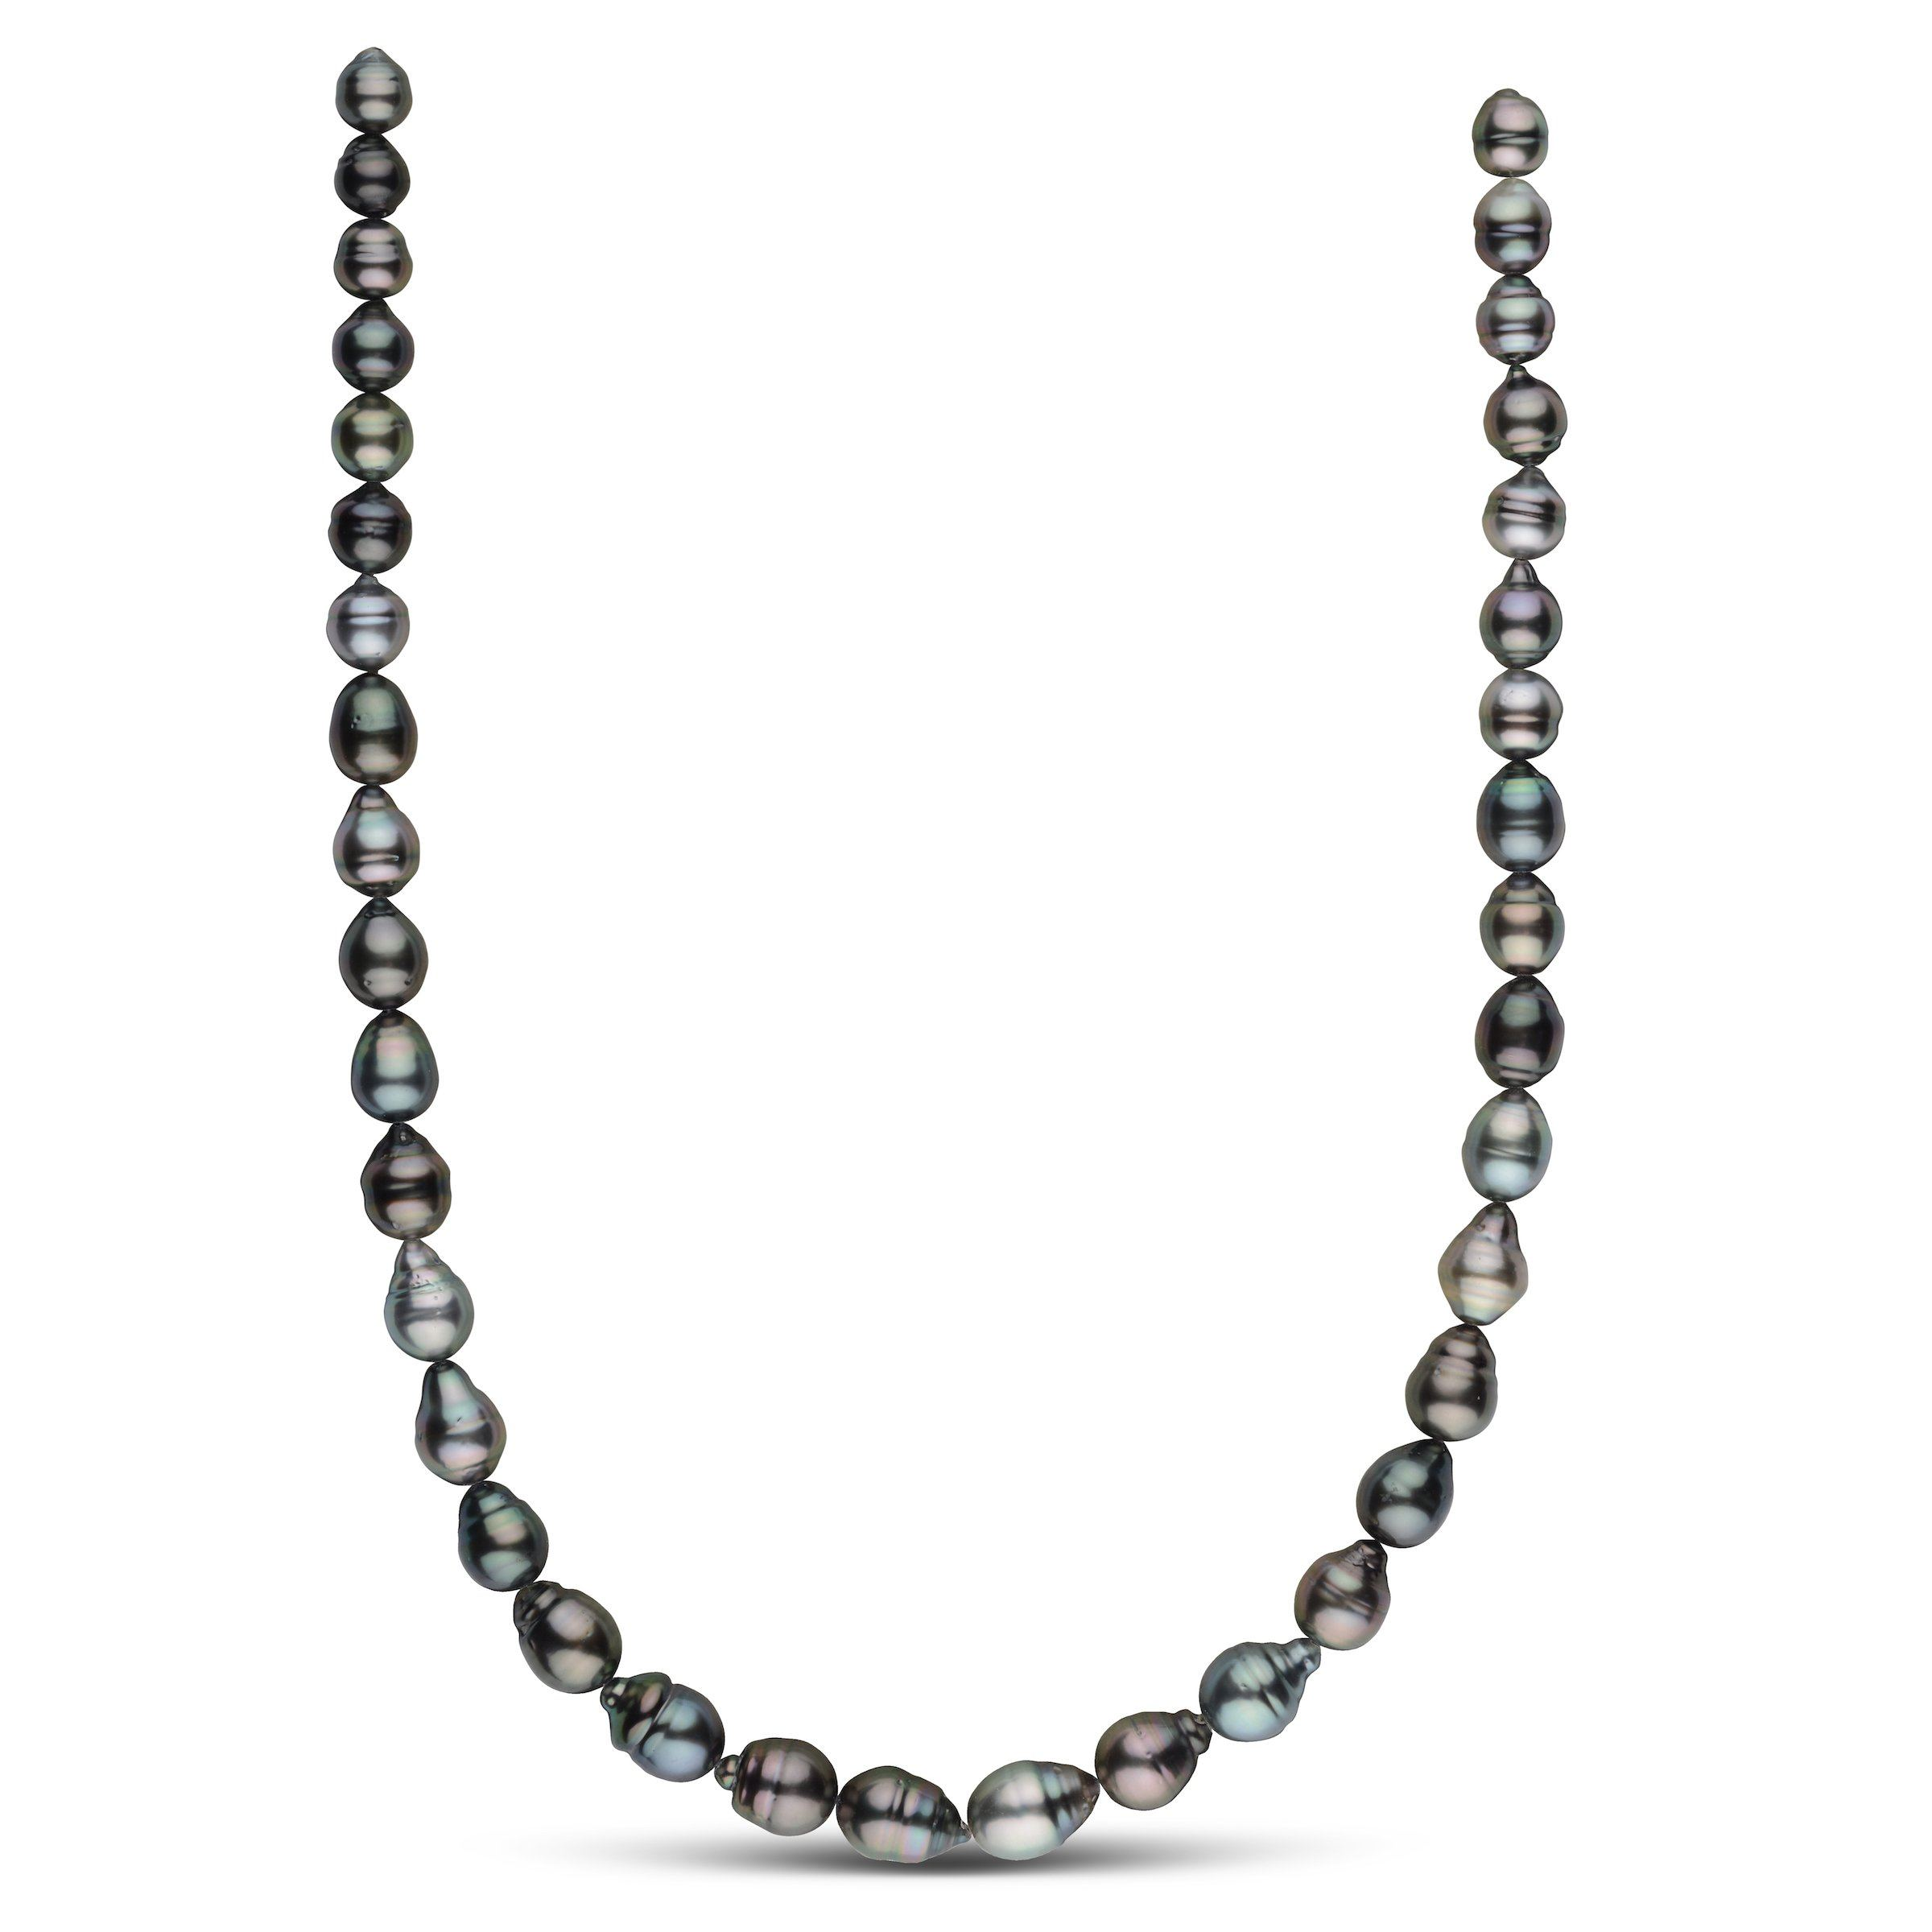 8.1-10.3 mm AA+/AAA Tahitian Baroque Pearl Necklace